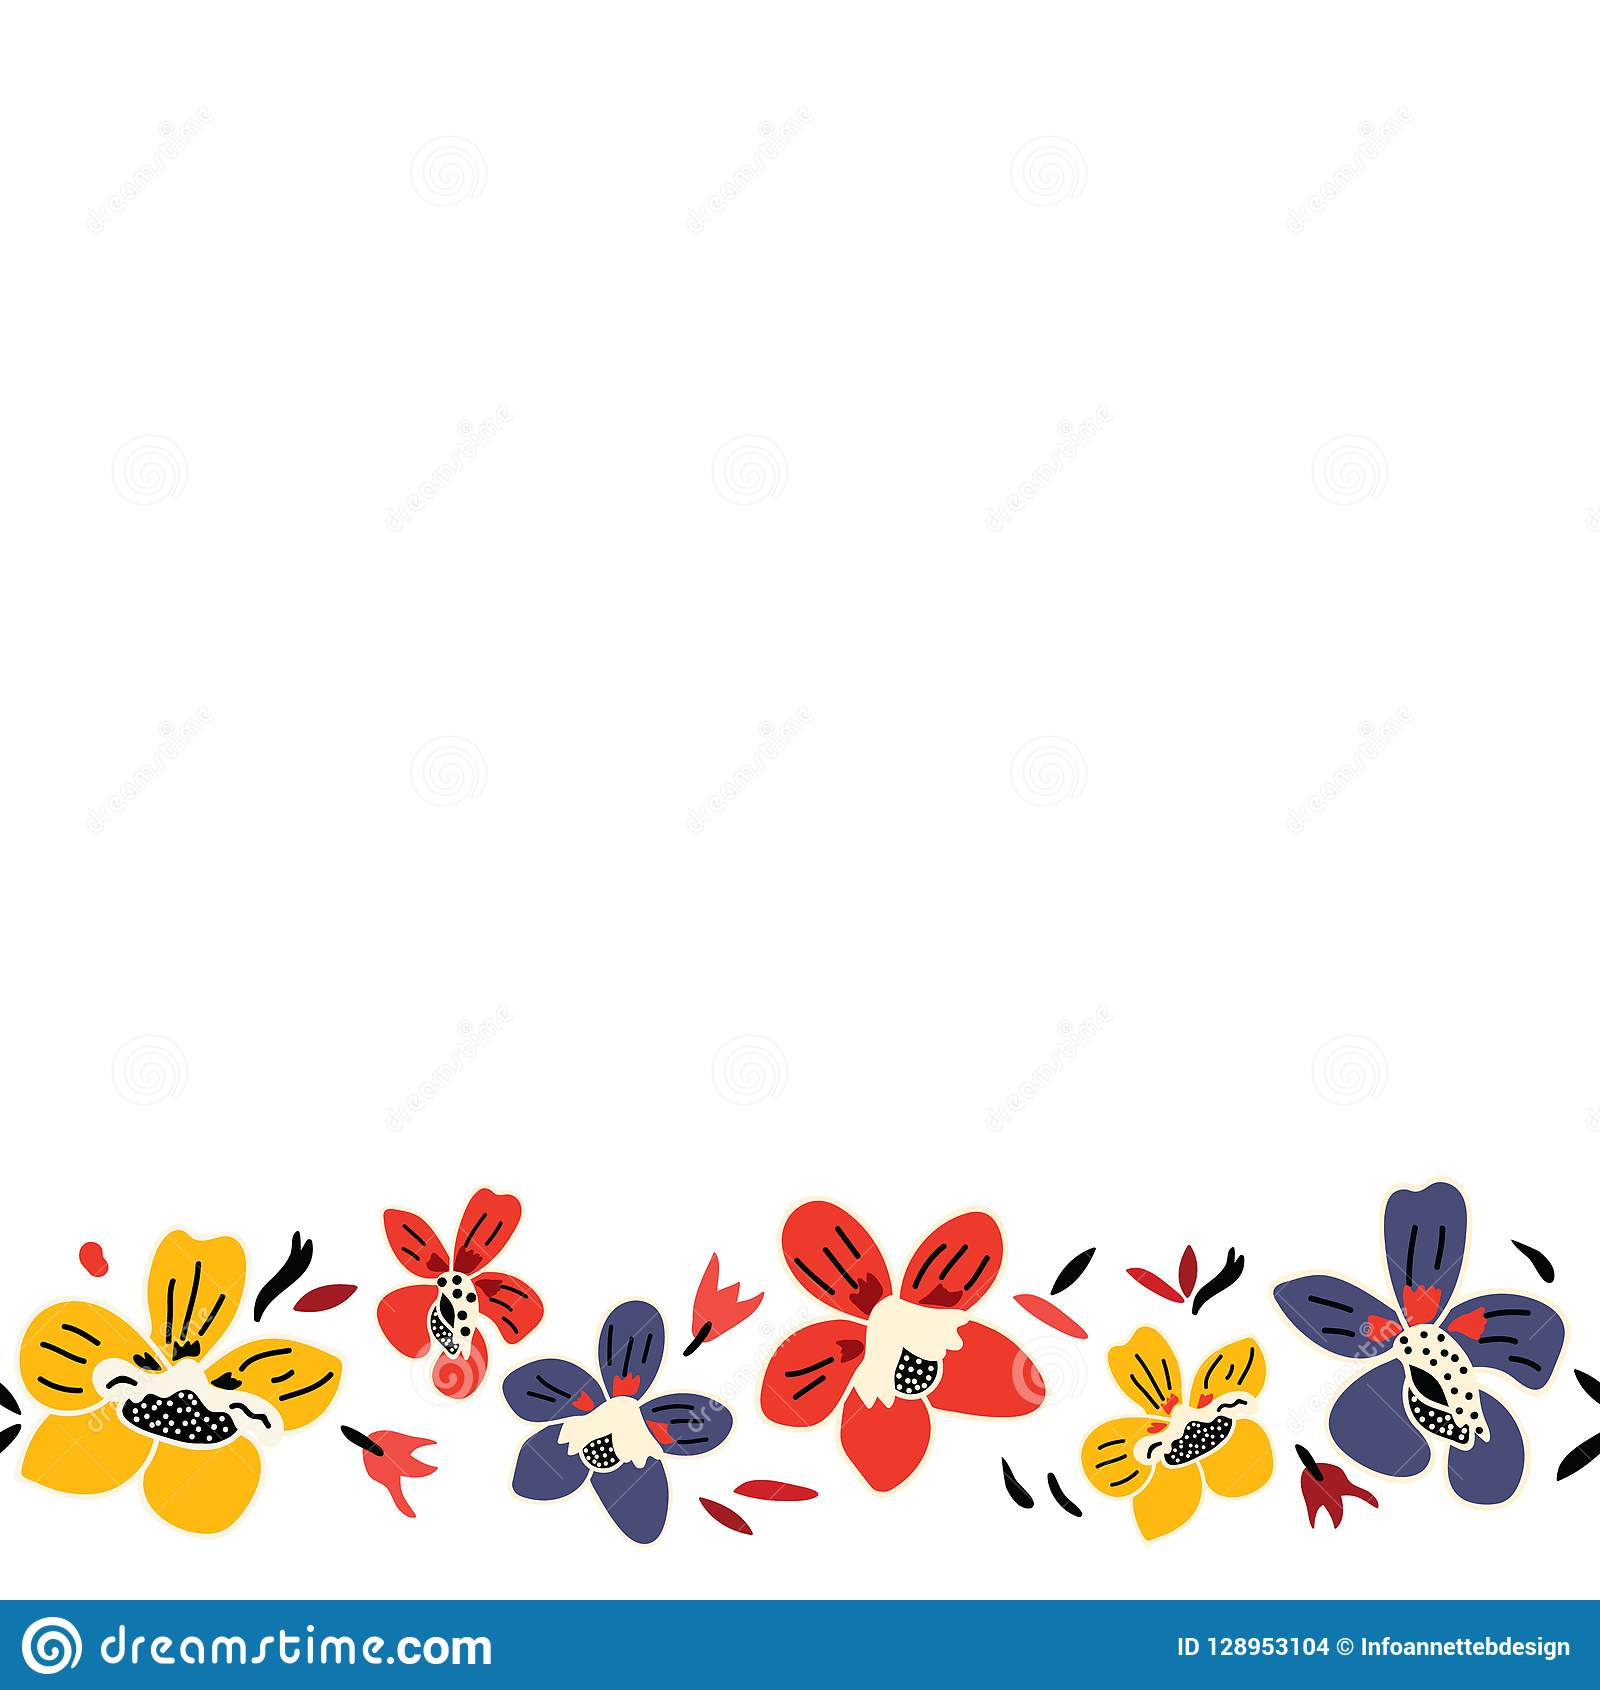 Vector Seamless Repeat Colorful Floral Border Pattern With Blue